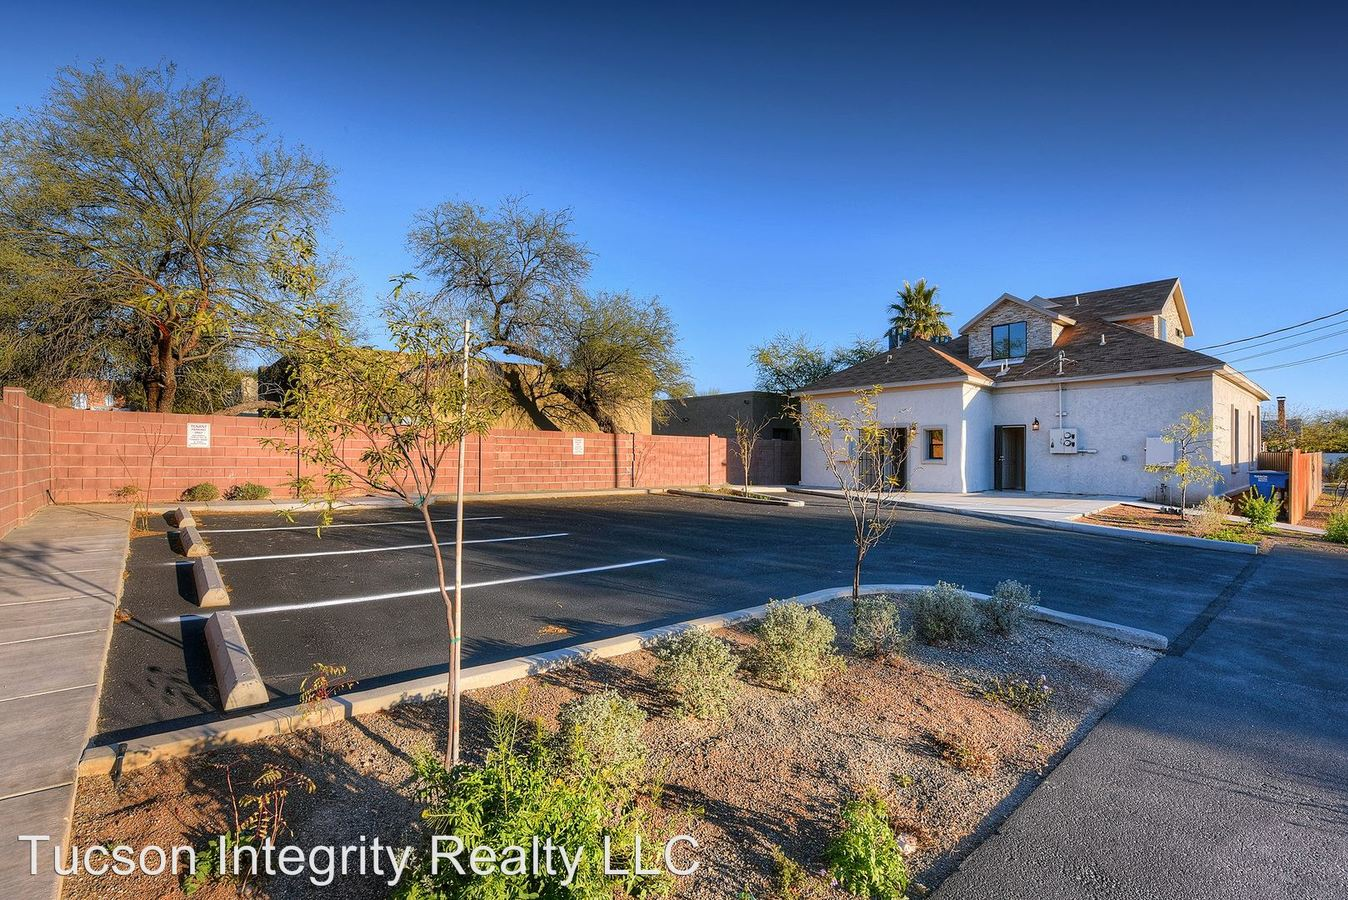 4 Bedrooms 2 Bathrooms Apartment for rent at 903 E. 7th St in Tucson, AZ